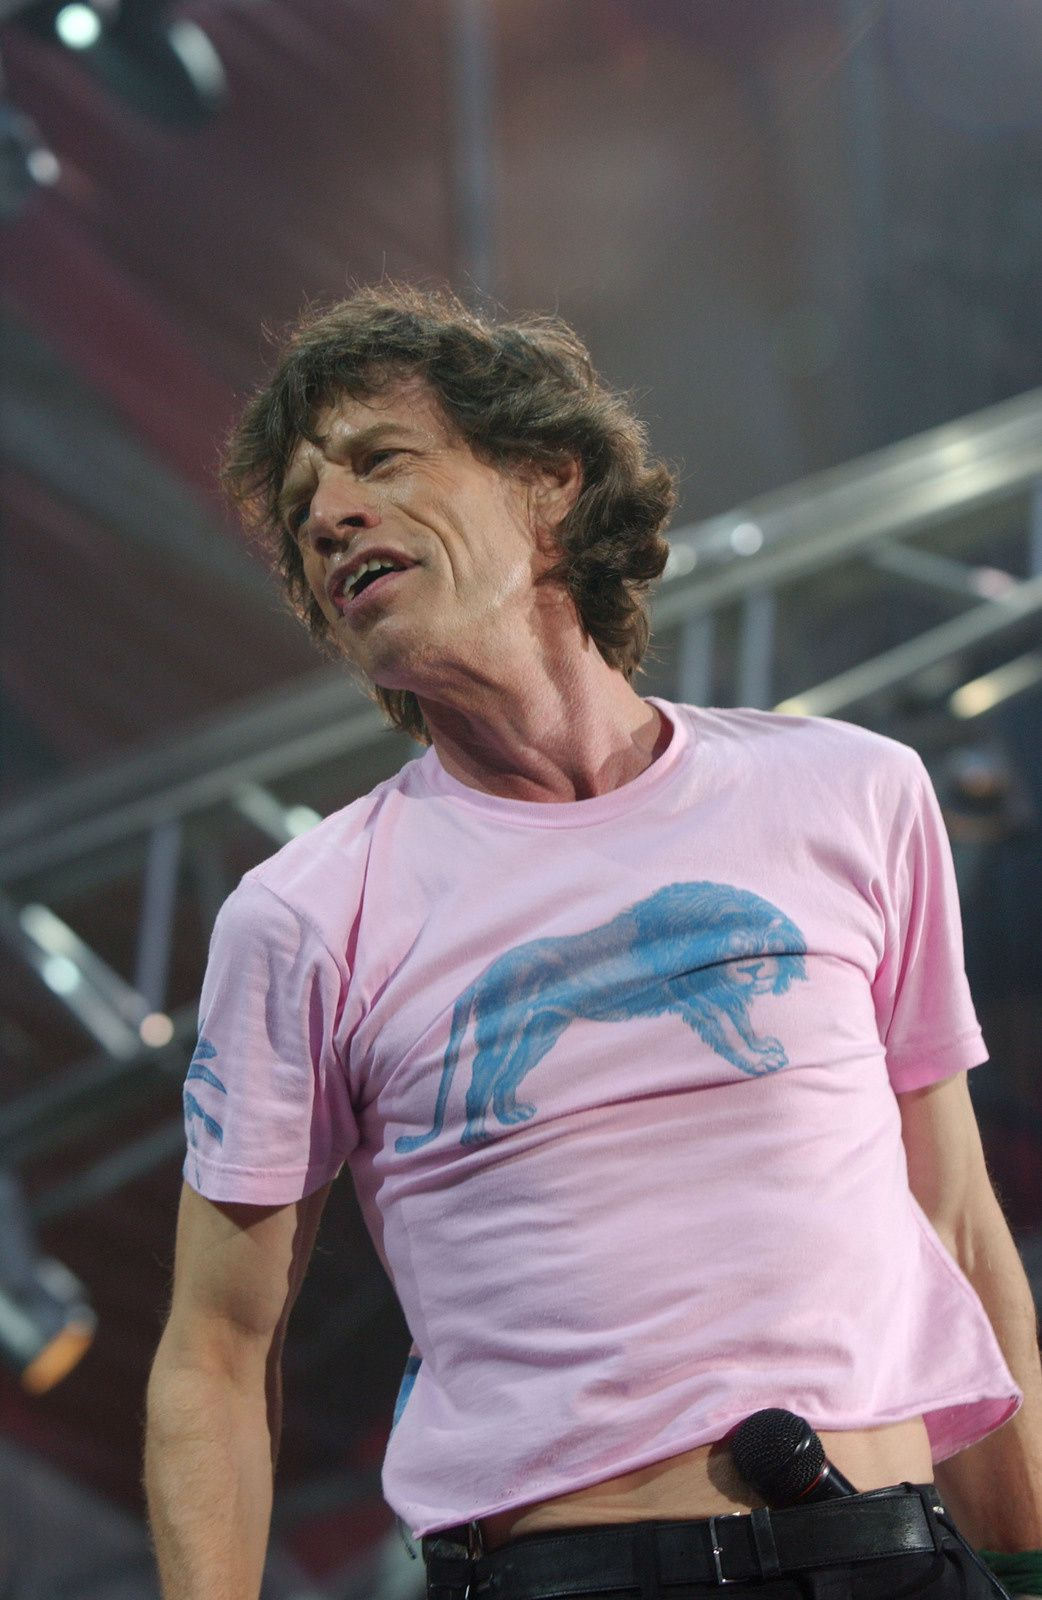 Mick Jagger, The Rolling Stones (live in Italy, 2003)